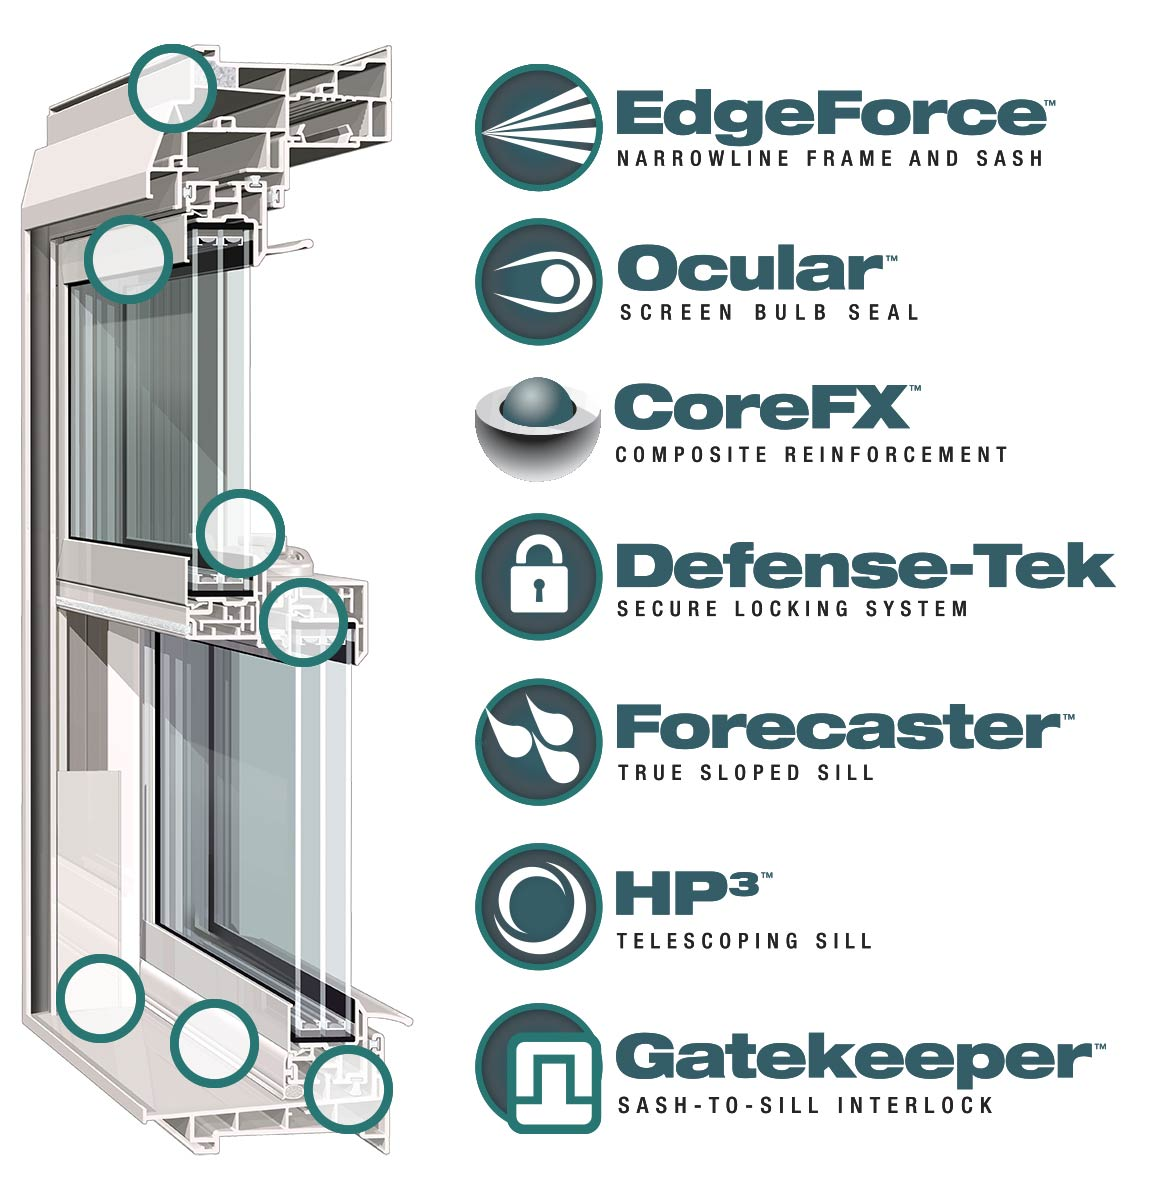 Diagram of unique performance features of windows from Window Depot USA